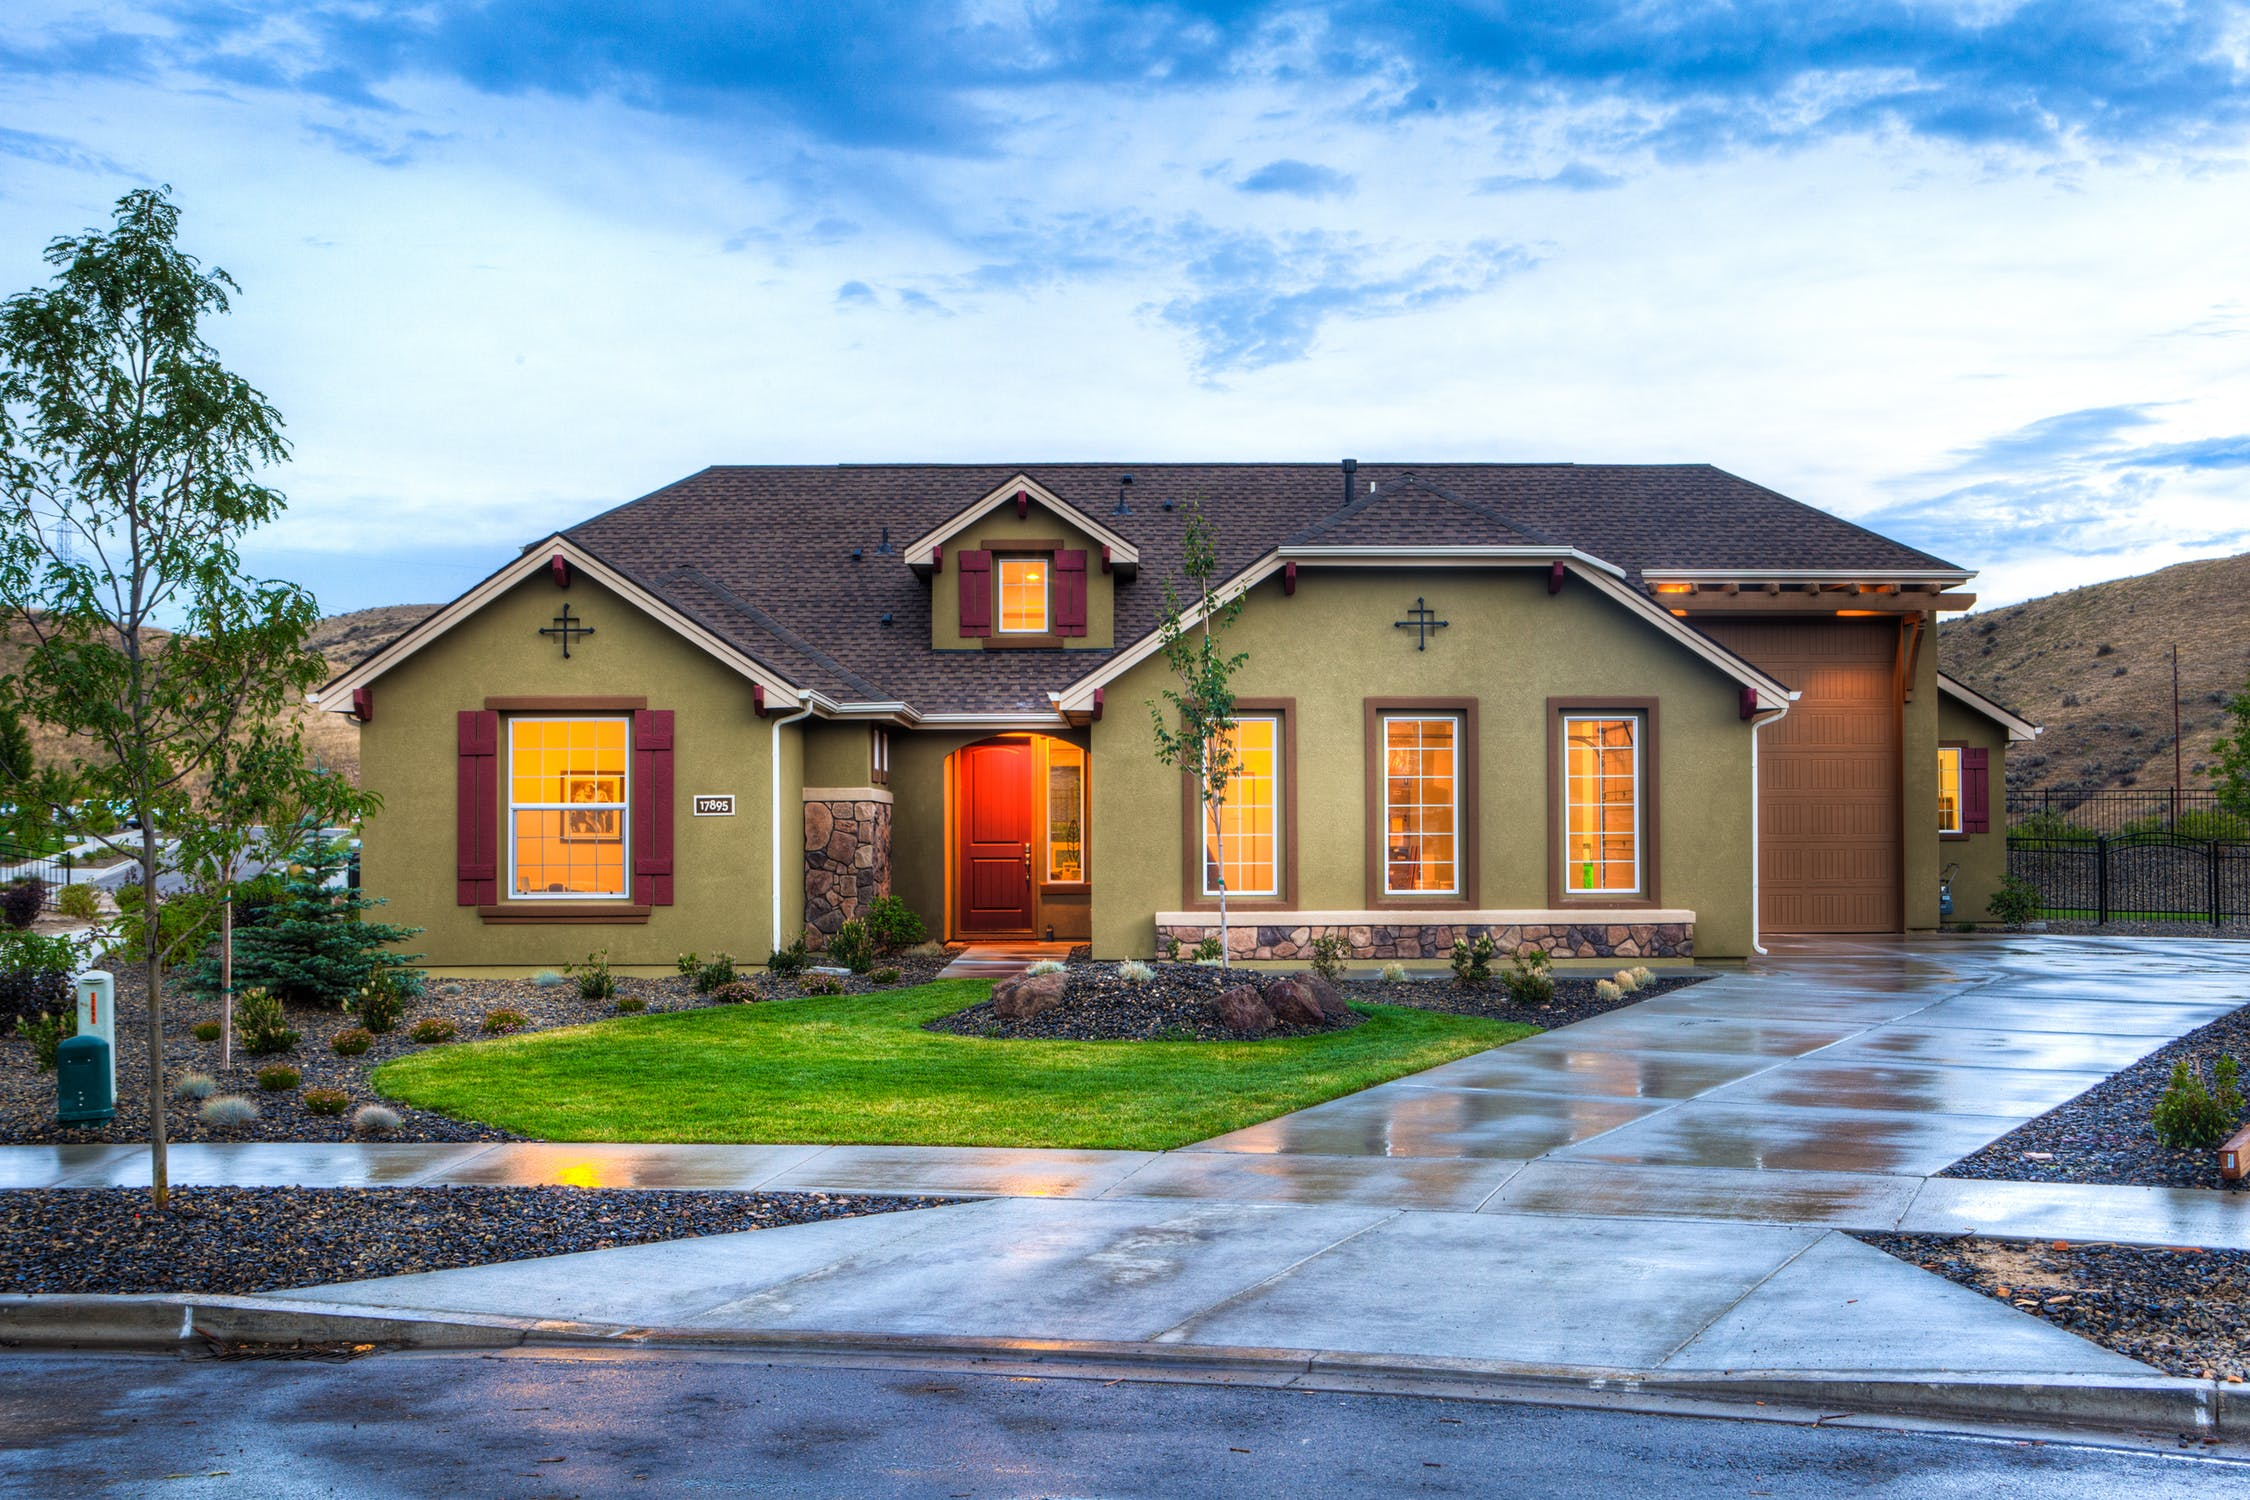 How to Find the Perfect Concrete Driveway Contractor